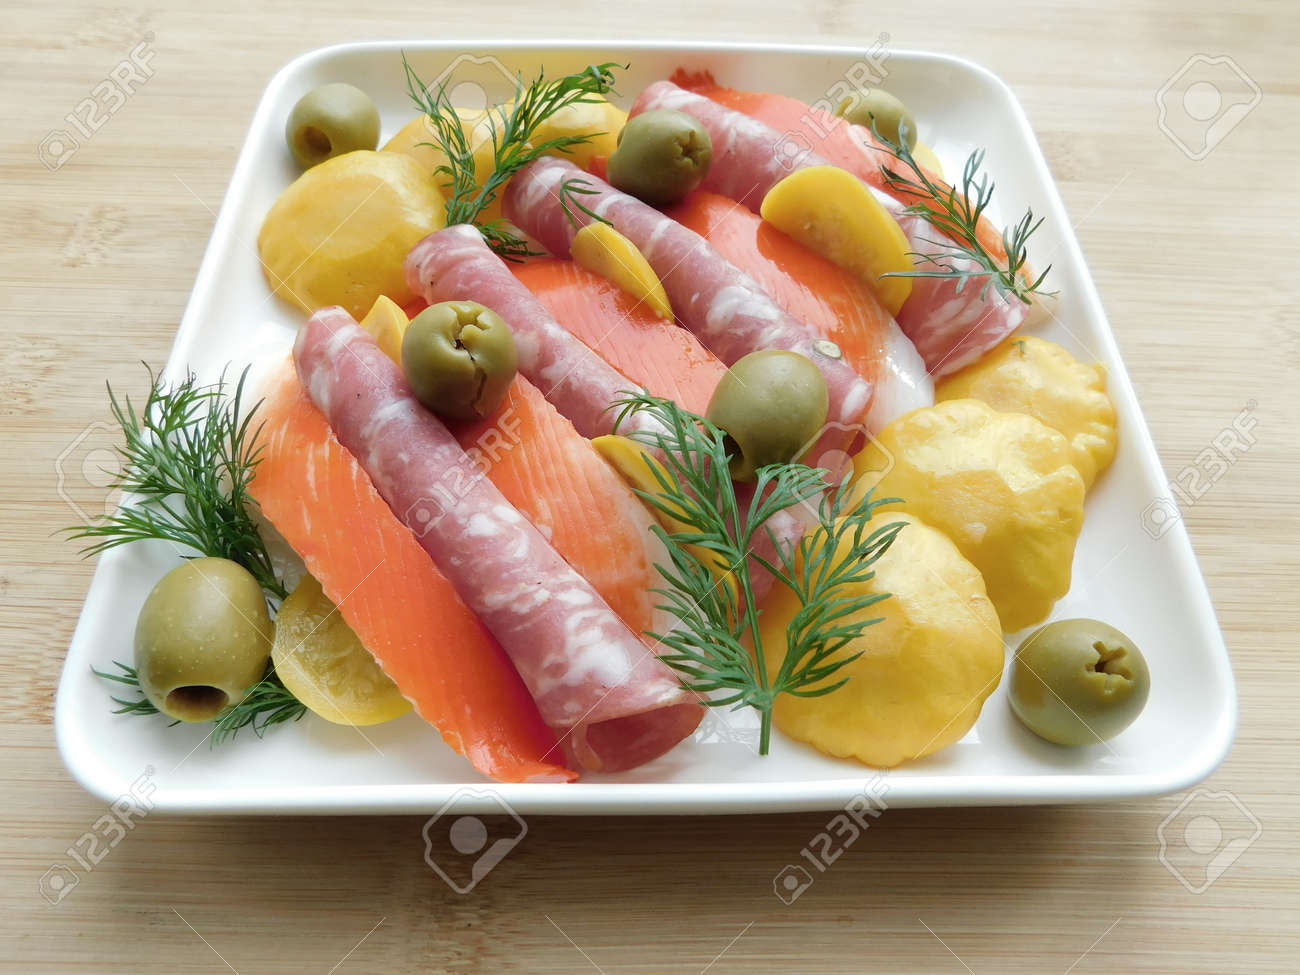 salami, olives and squash on a plate on a wooden table. traditional snacks - 165335634